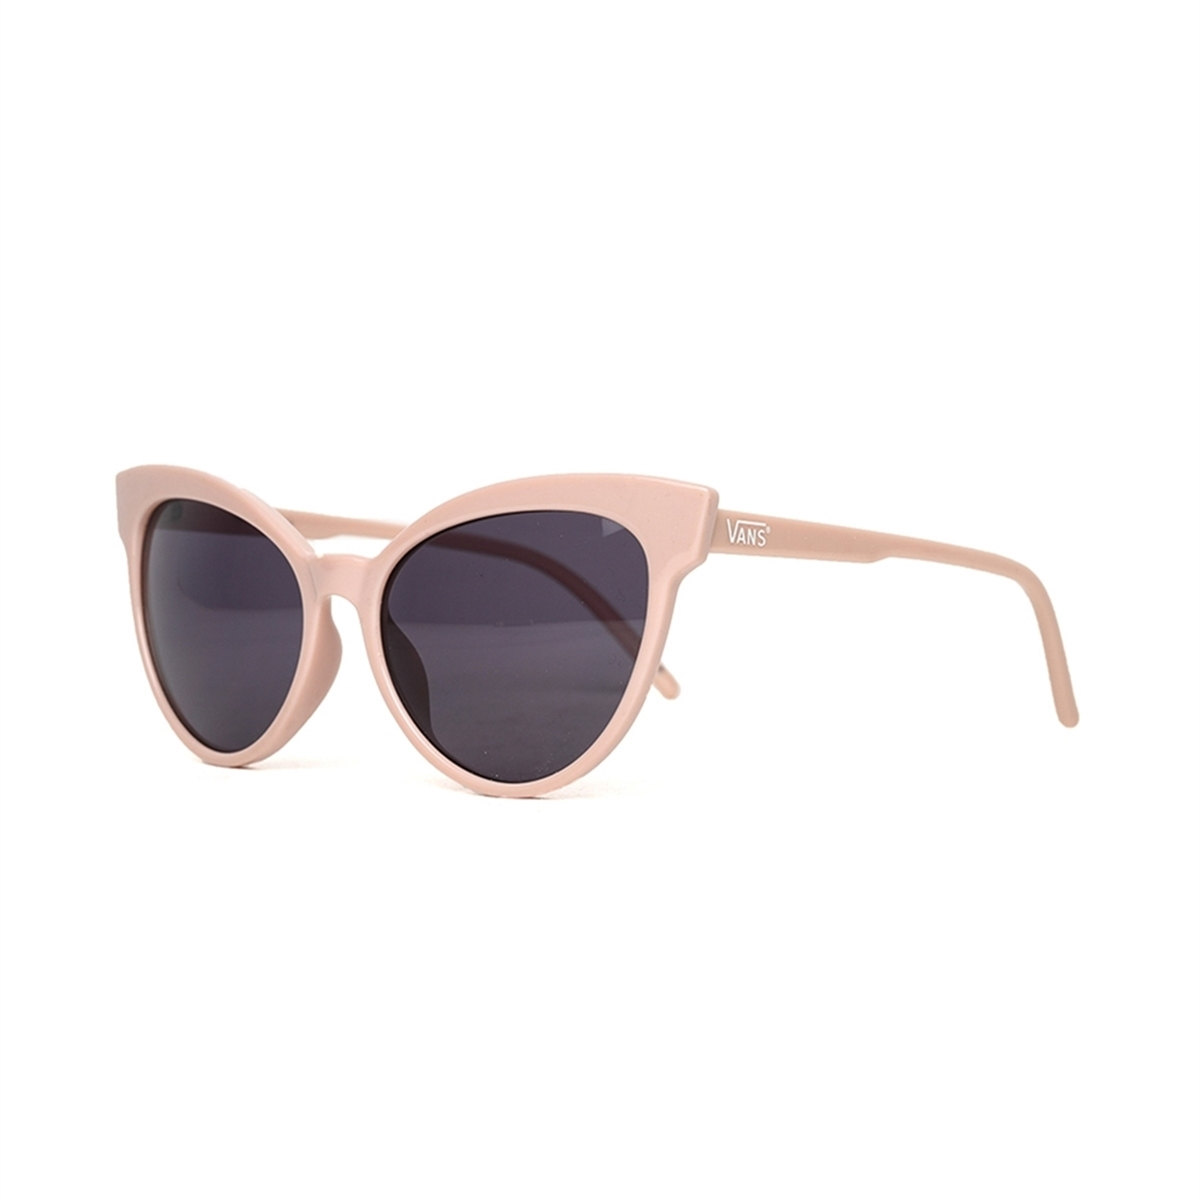 Vans Очки Солнцезащитные WM SELINA SUNGLASSES EVENING SAND VA3ILPP5I